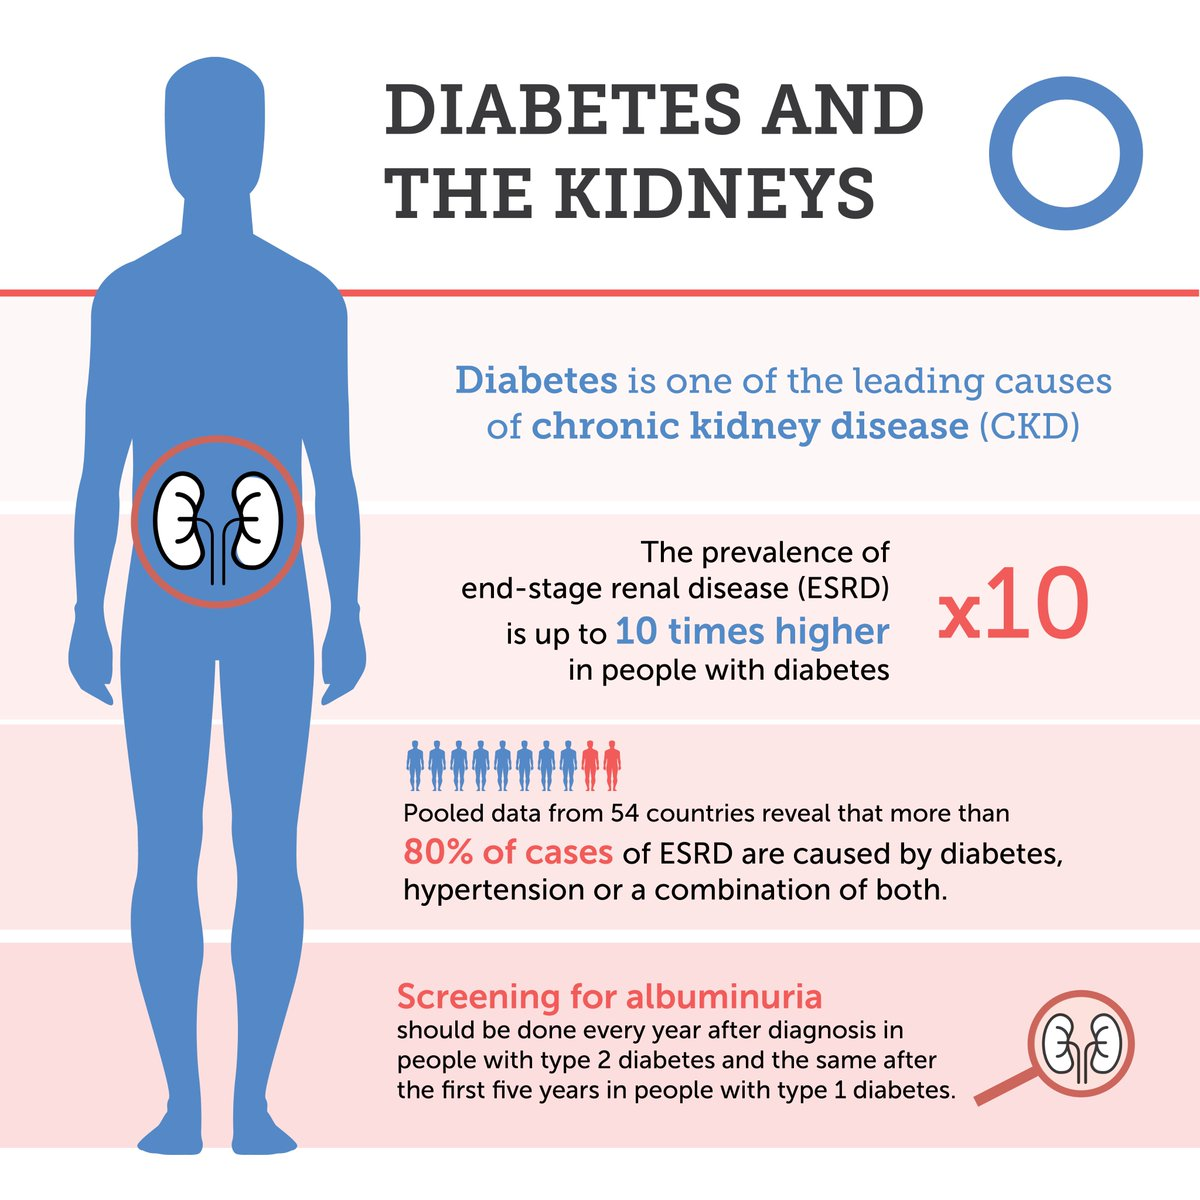 World Diabetes Day On Twitter Diabetes Is One Of The Leading Causes Of Chronic Kidney Disease Ckd Support Worldkidneyday And Learn More About Kidney Disease Prevention At Https T Co Xyuzasxtnp Https T Co Qhsfhswx40